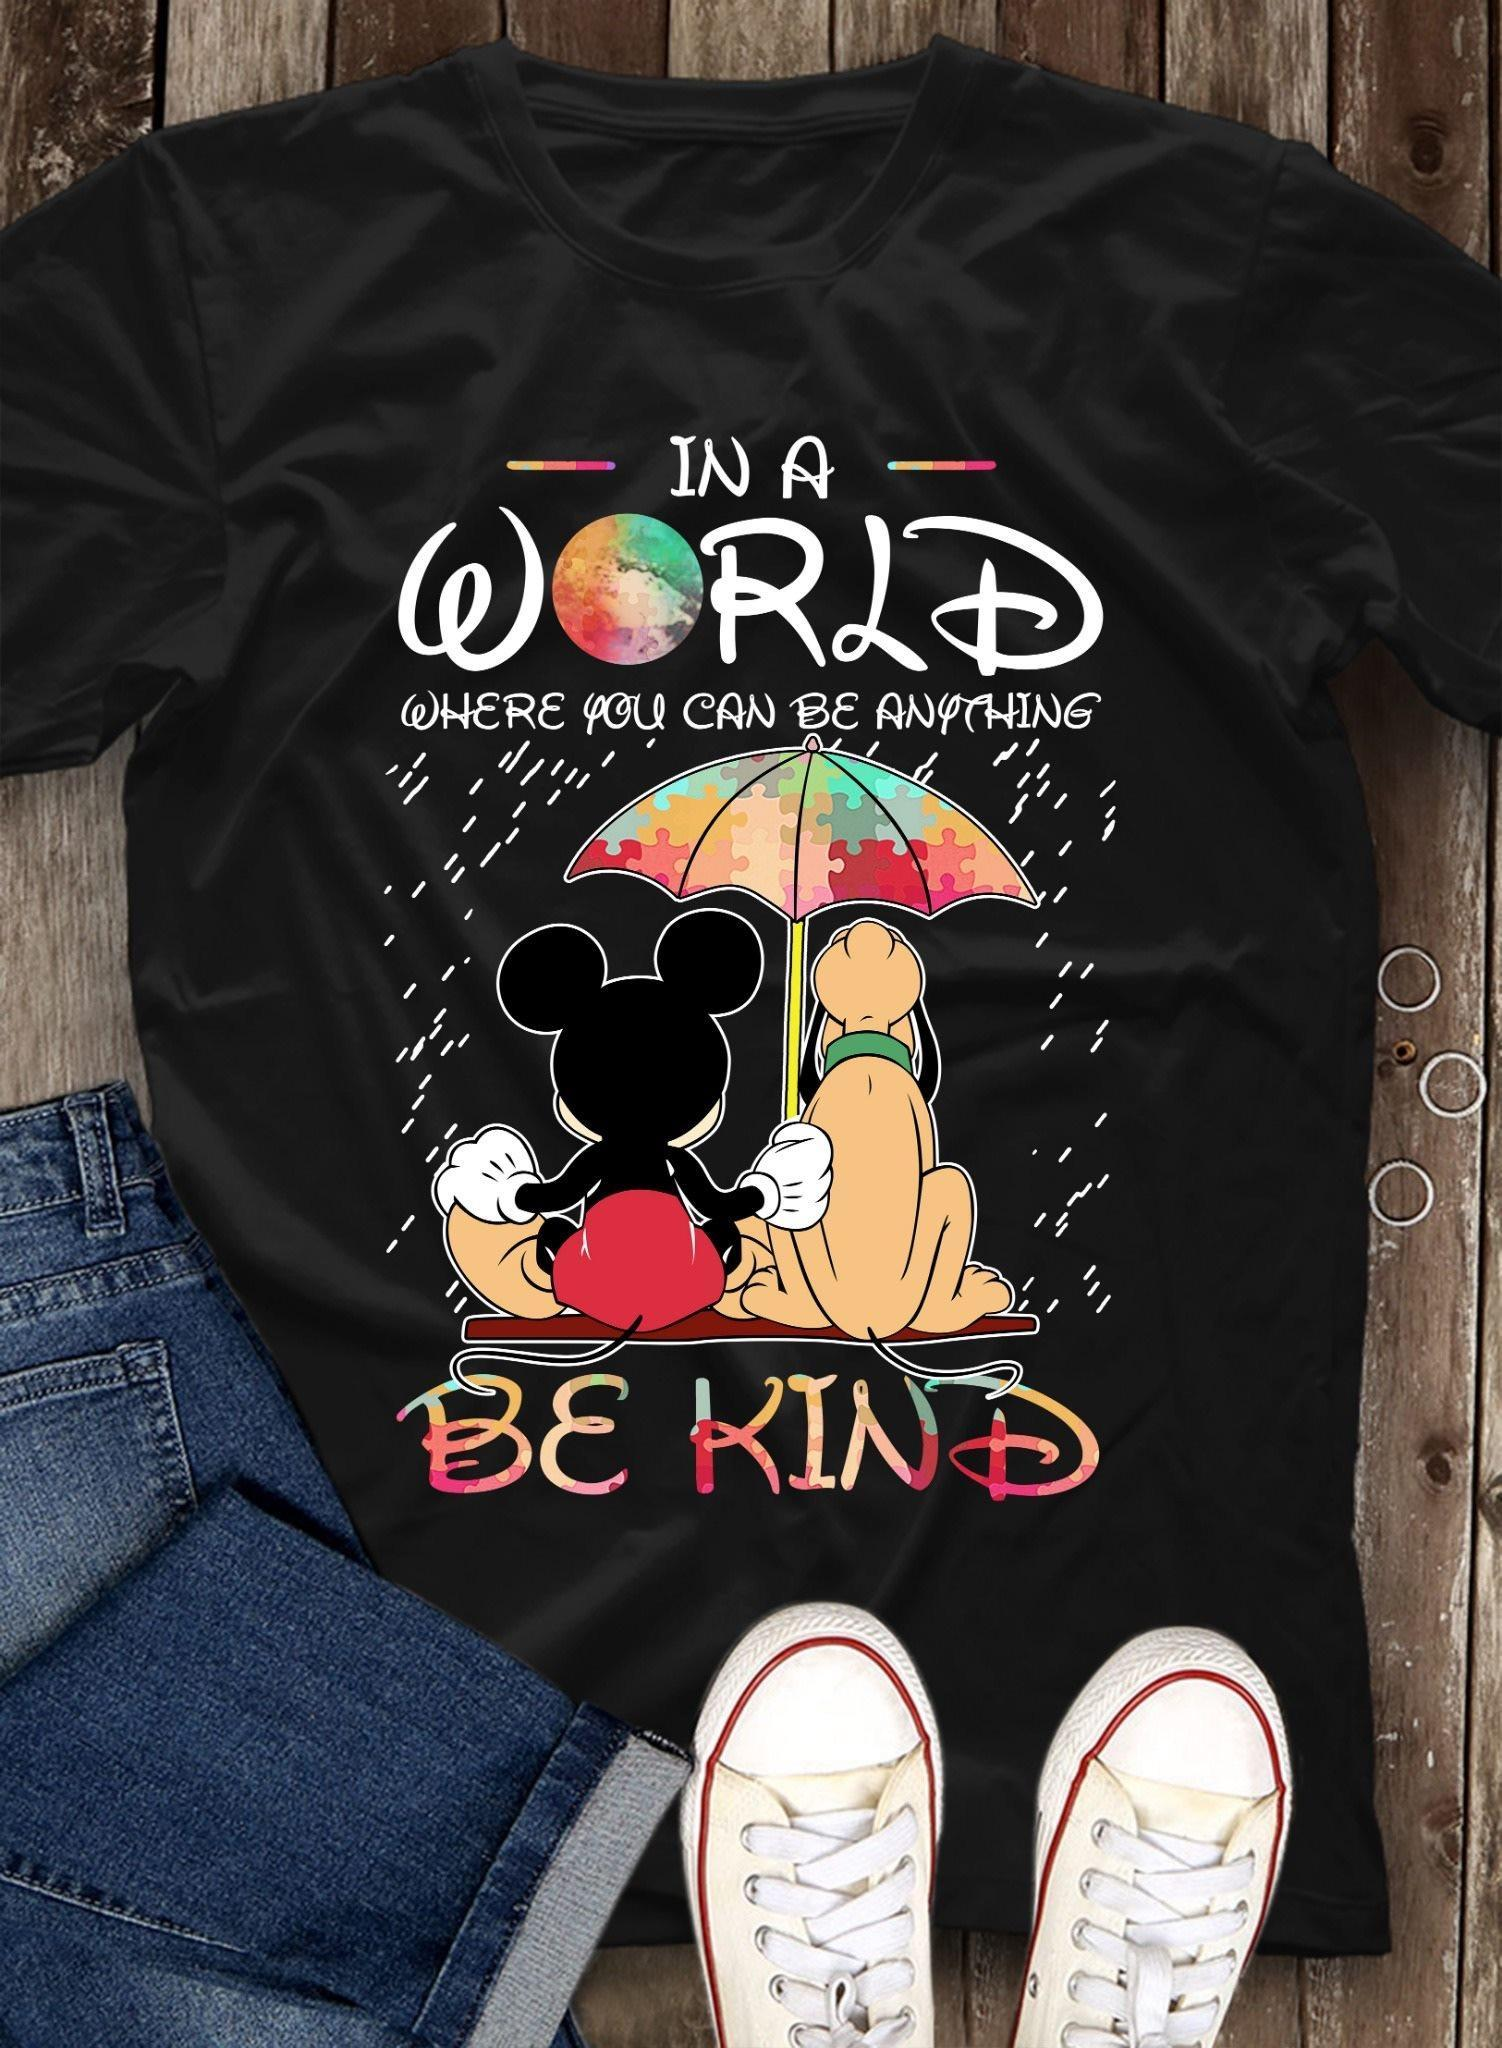 A pic of t shirt with inspirational message